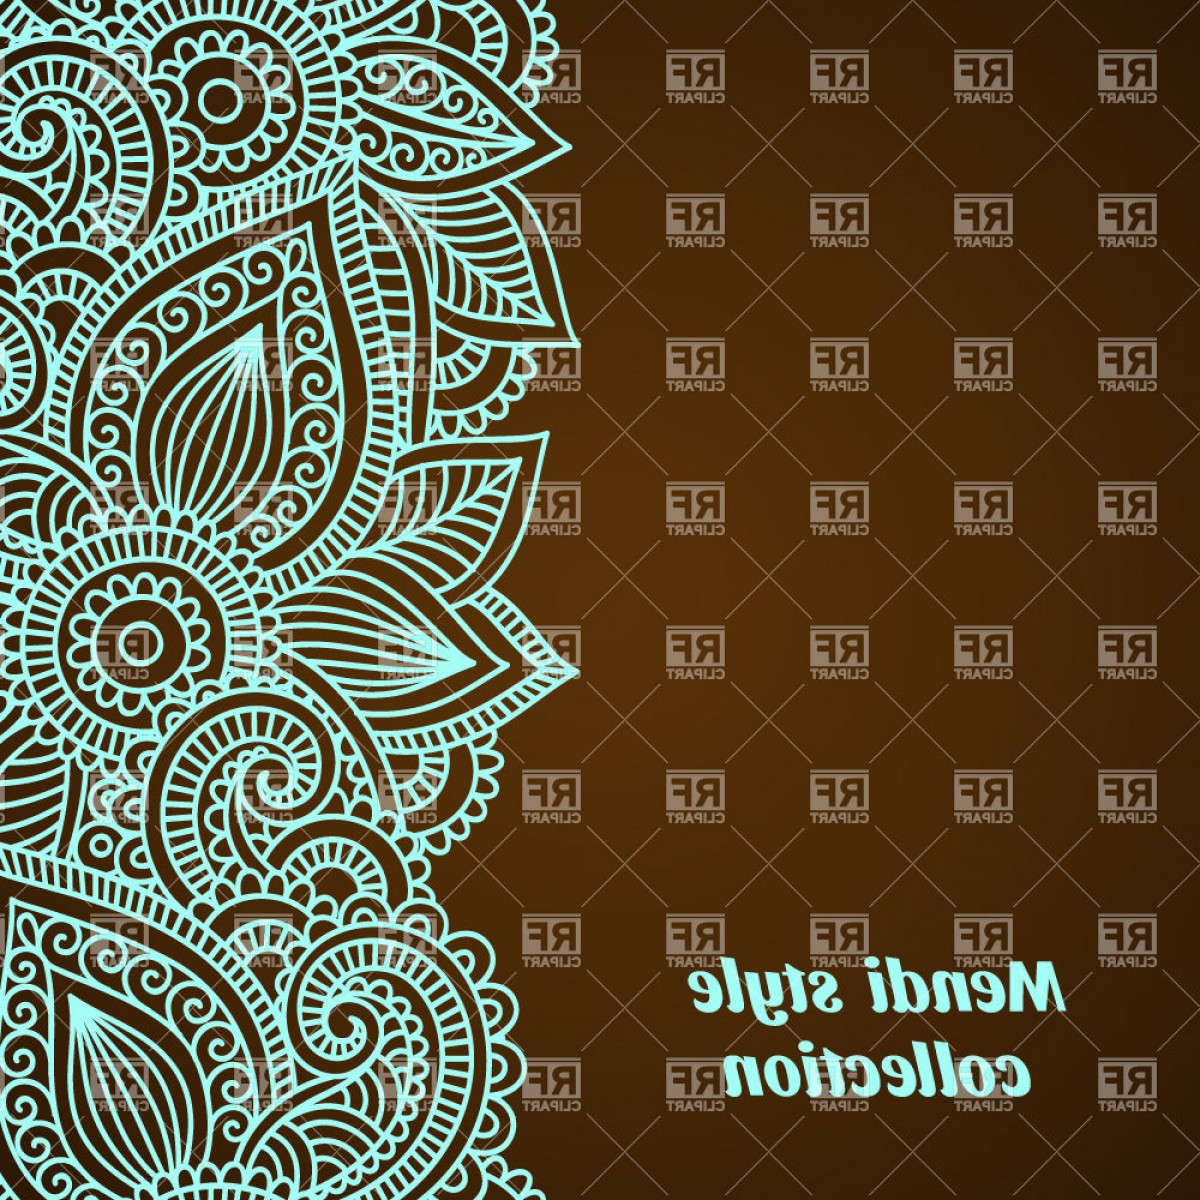 India Clip Art Vector Designs: Floral Background With Ethnic Indian Tracery Mendi Style Border Vector Clipart